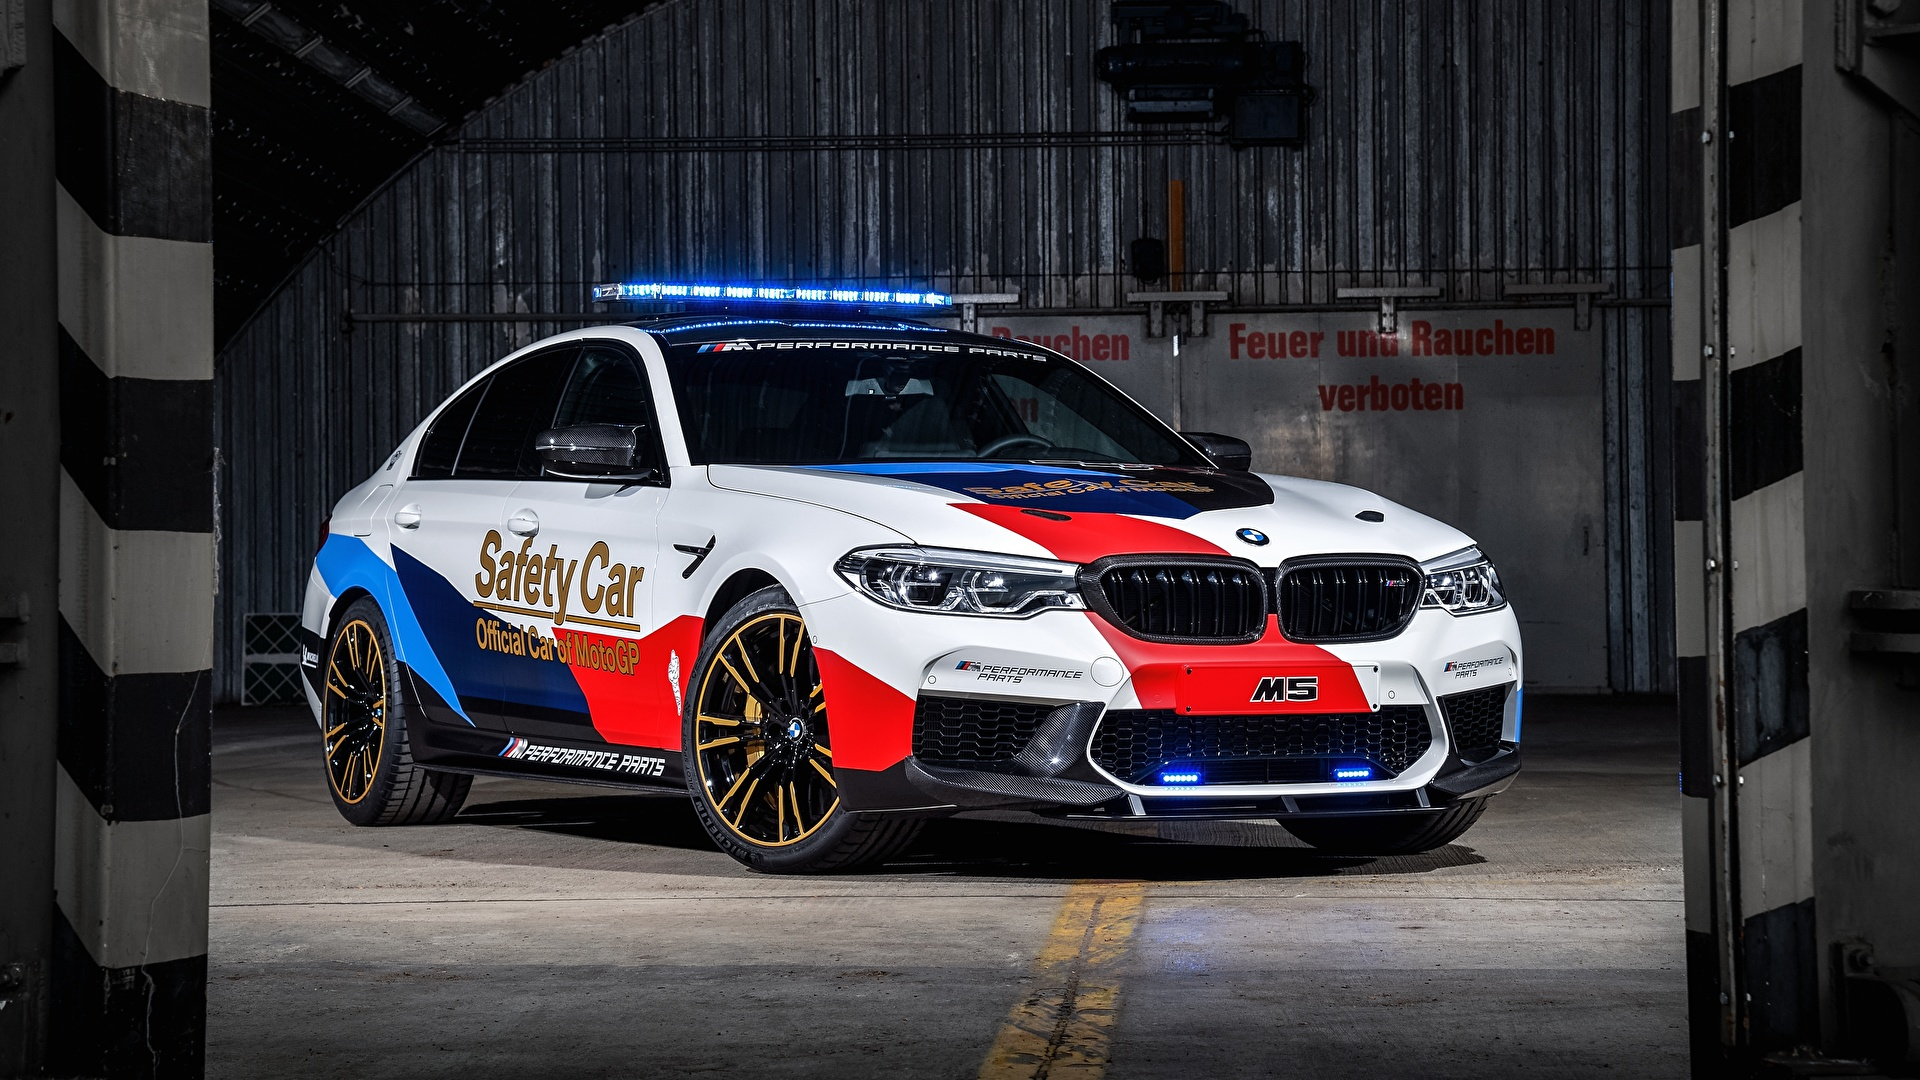 Images BMW Tuning 2018 M5 MotoGP Safety Car auto 1920x1080 Cars automobile